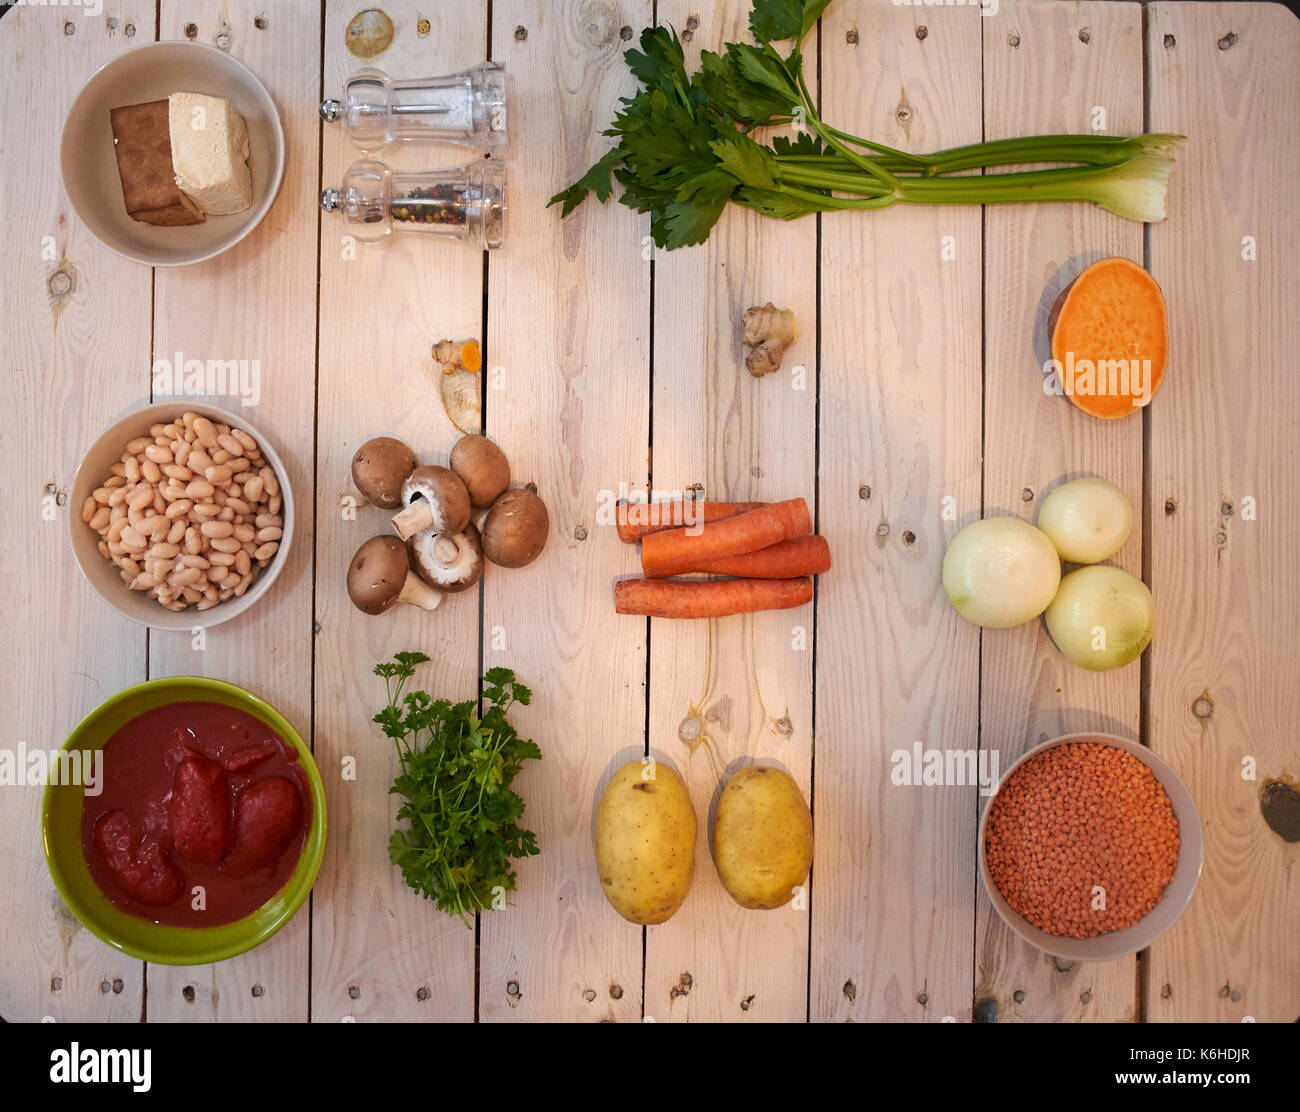 Vegetables and tofu counted on a table prepared for cooking a vegan dish - Stock Image